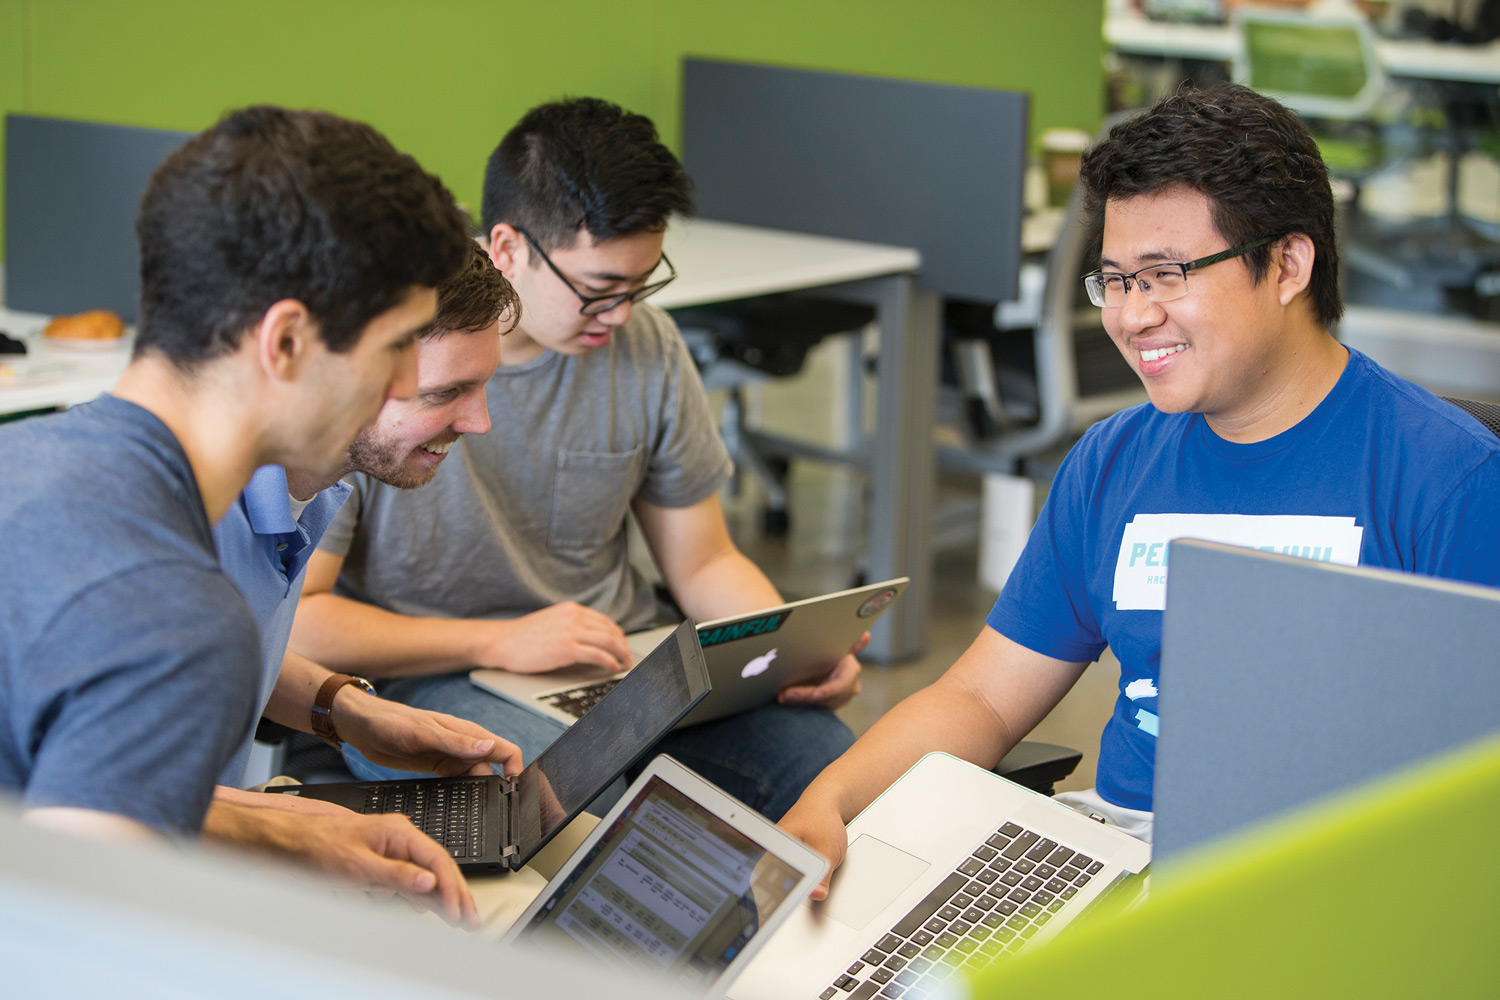 Students participate in a Hackathon